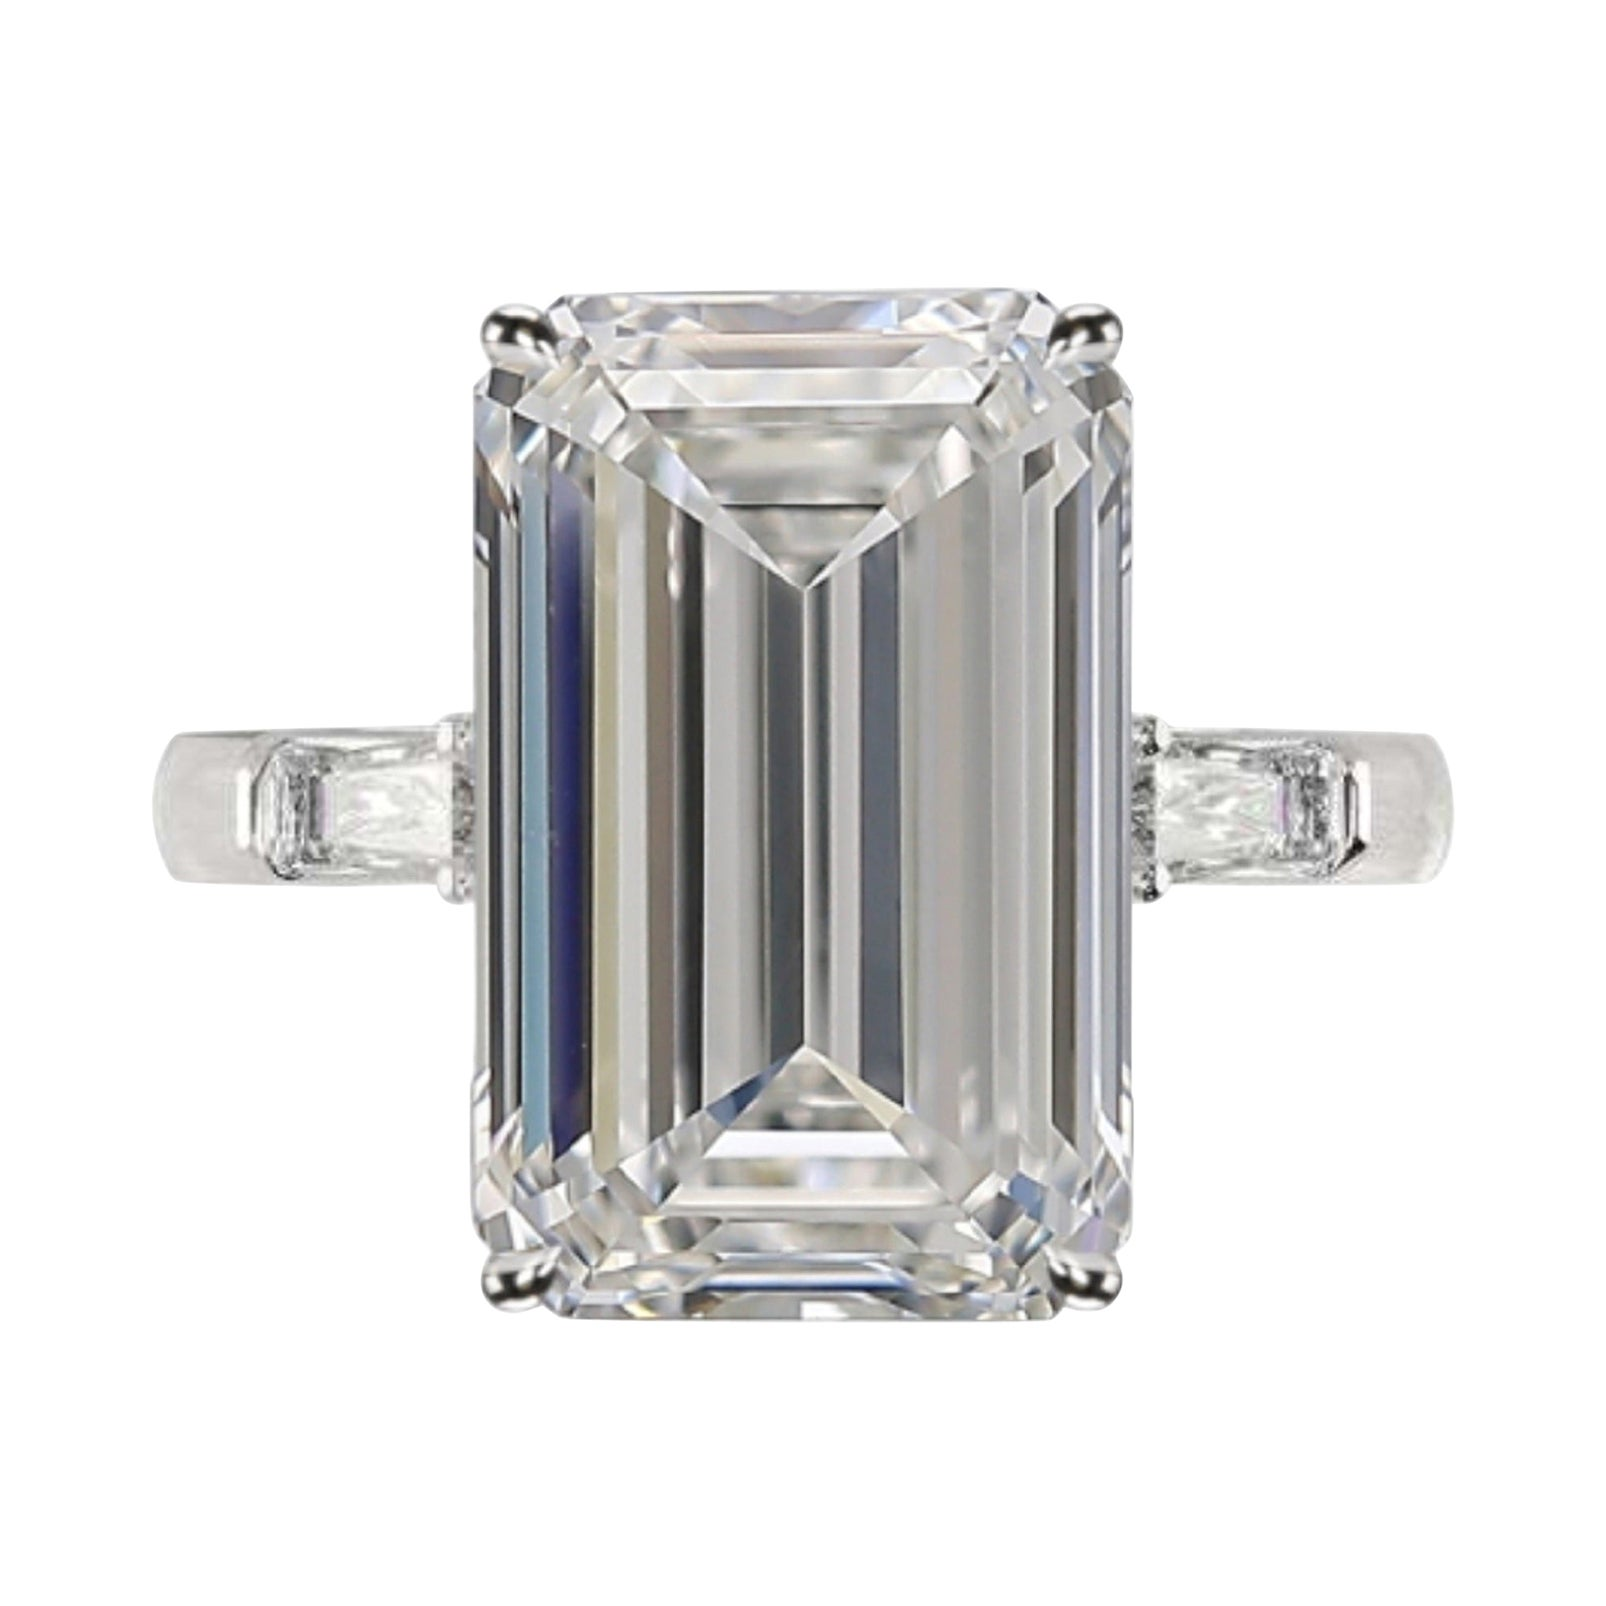 GIA Certified 7.50 Carat Emerald Cut Diamond Ring Very Long Ratio F Color VVS2